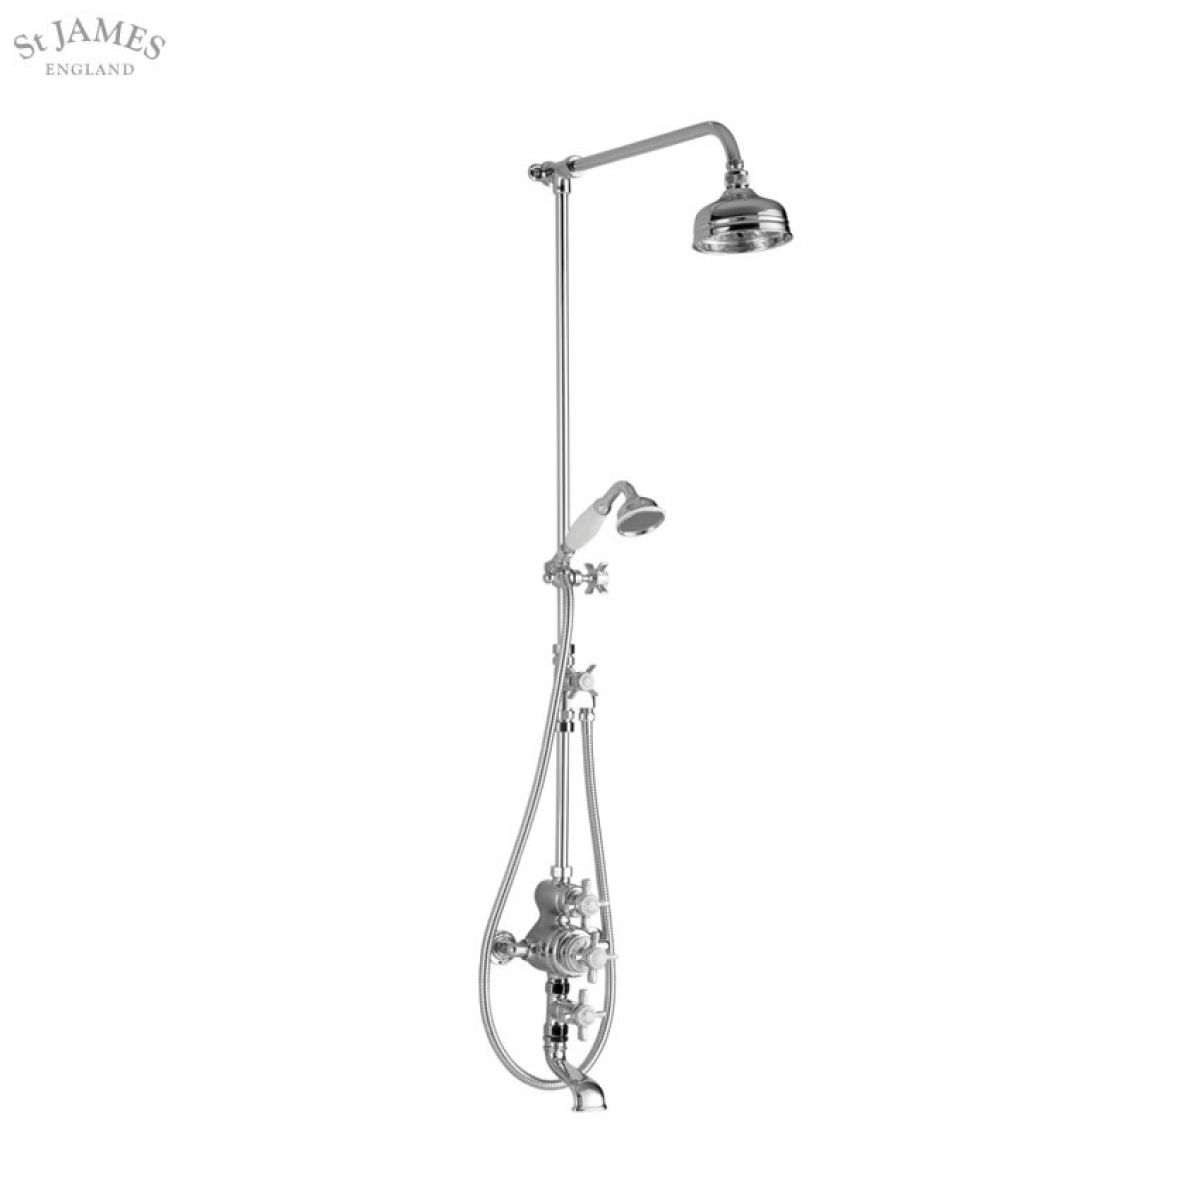 St James Exposed Thermostatic Shower Valve and Bath Filler : UK ...